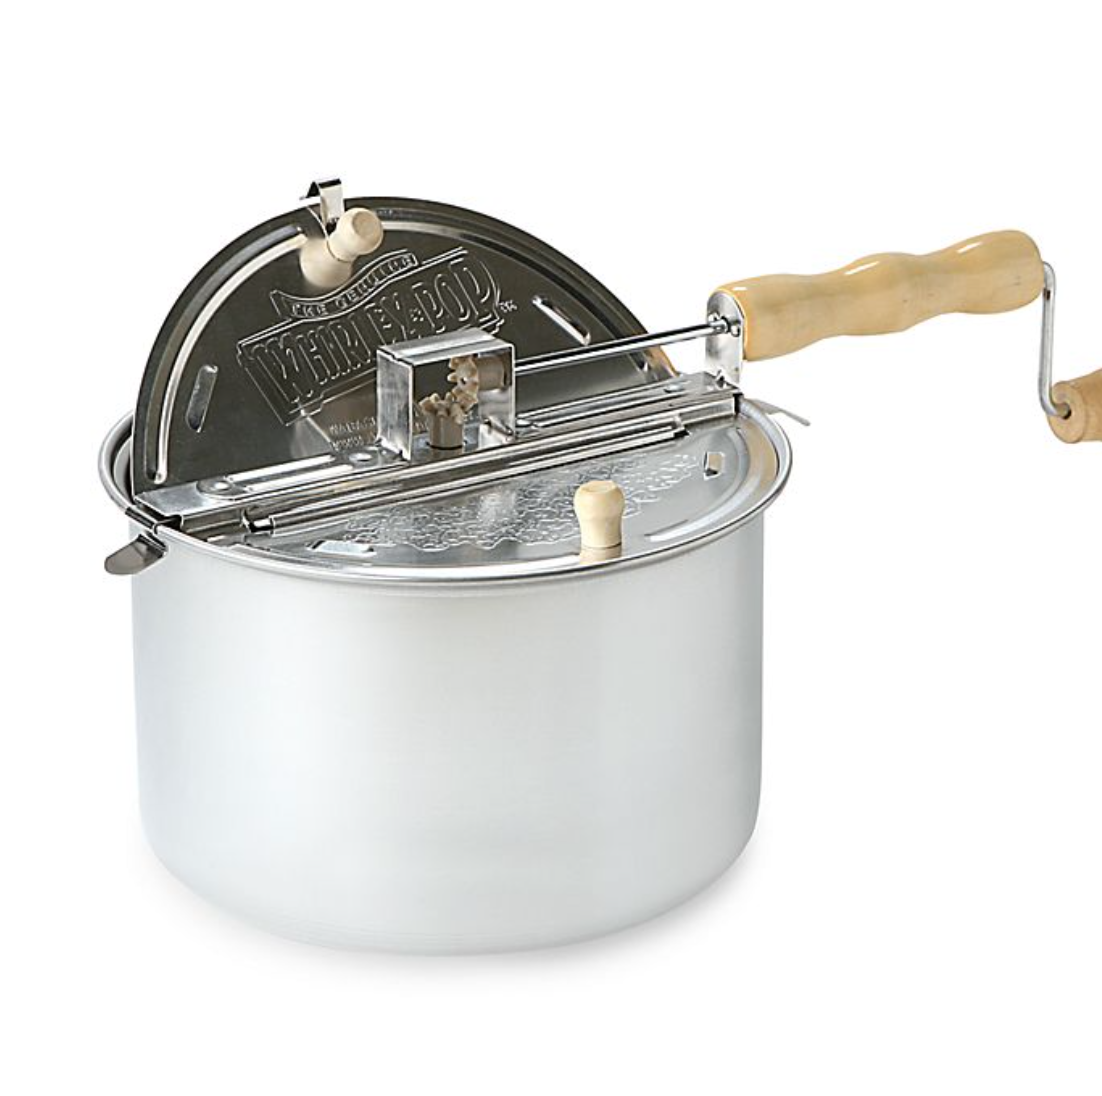 Wabash Valley Farms The Original Whirley Pop Stovetop Popcorn Popper